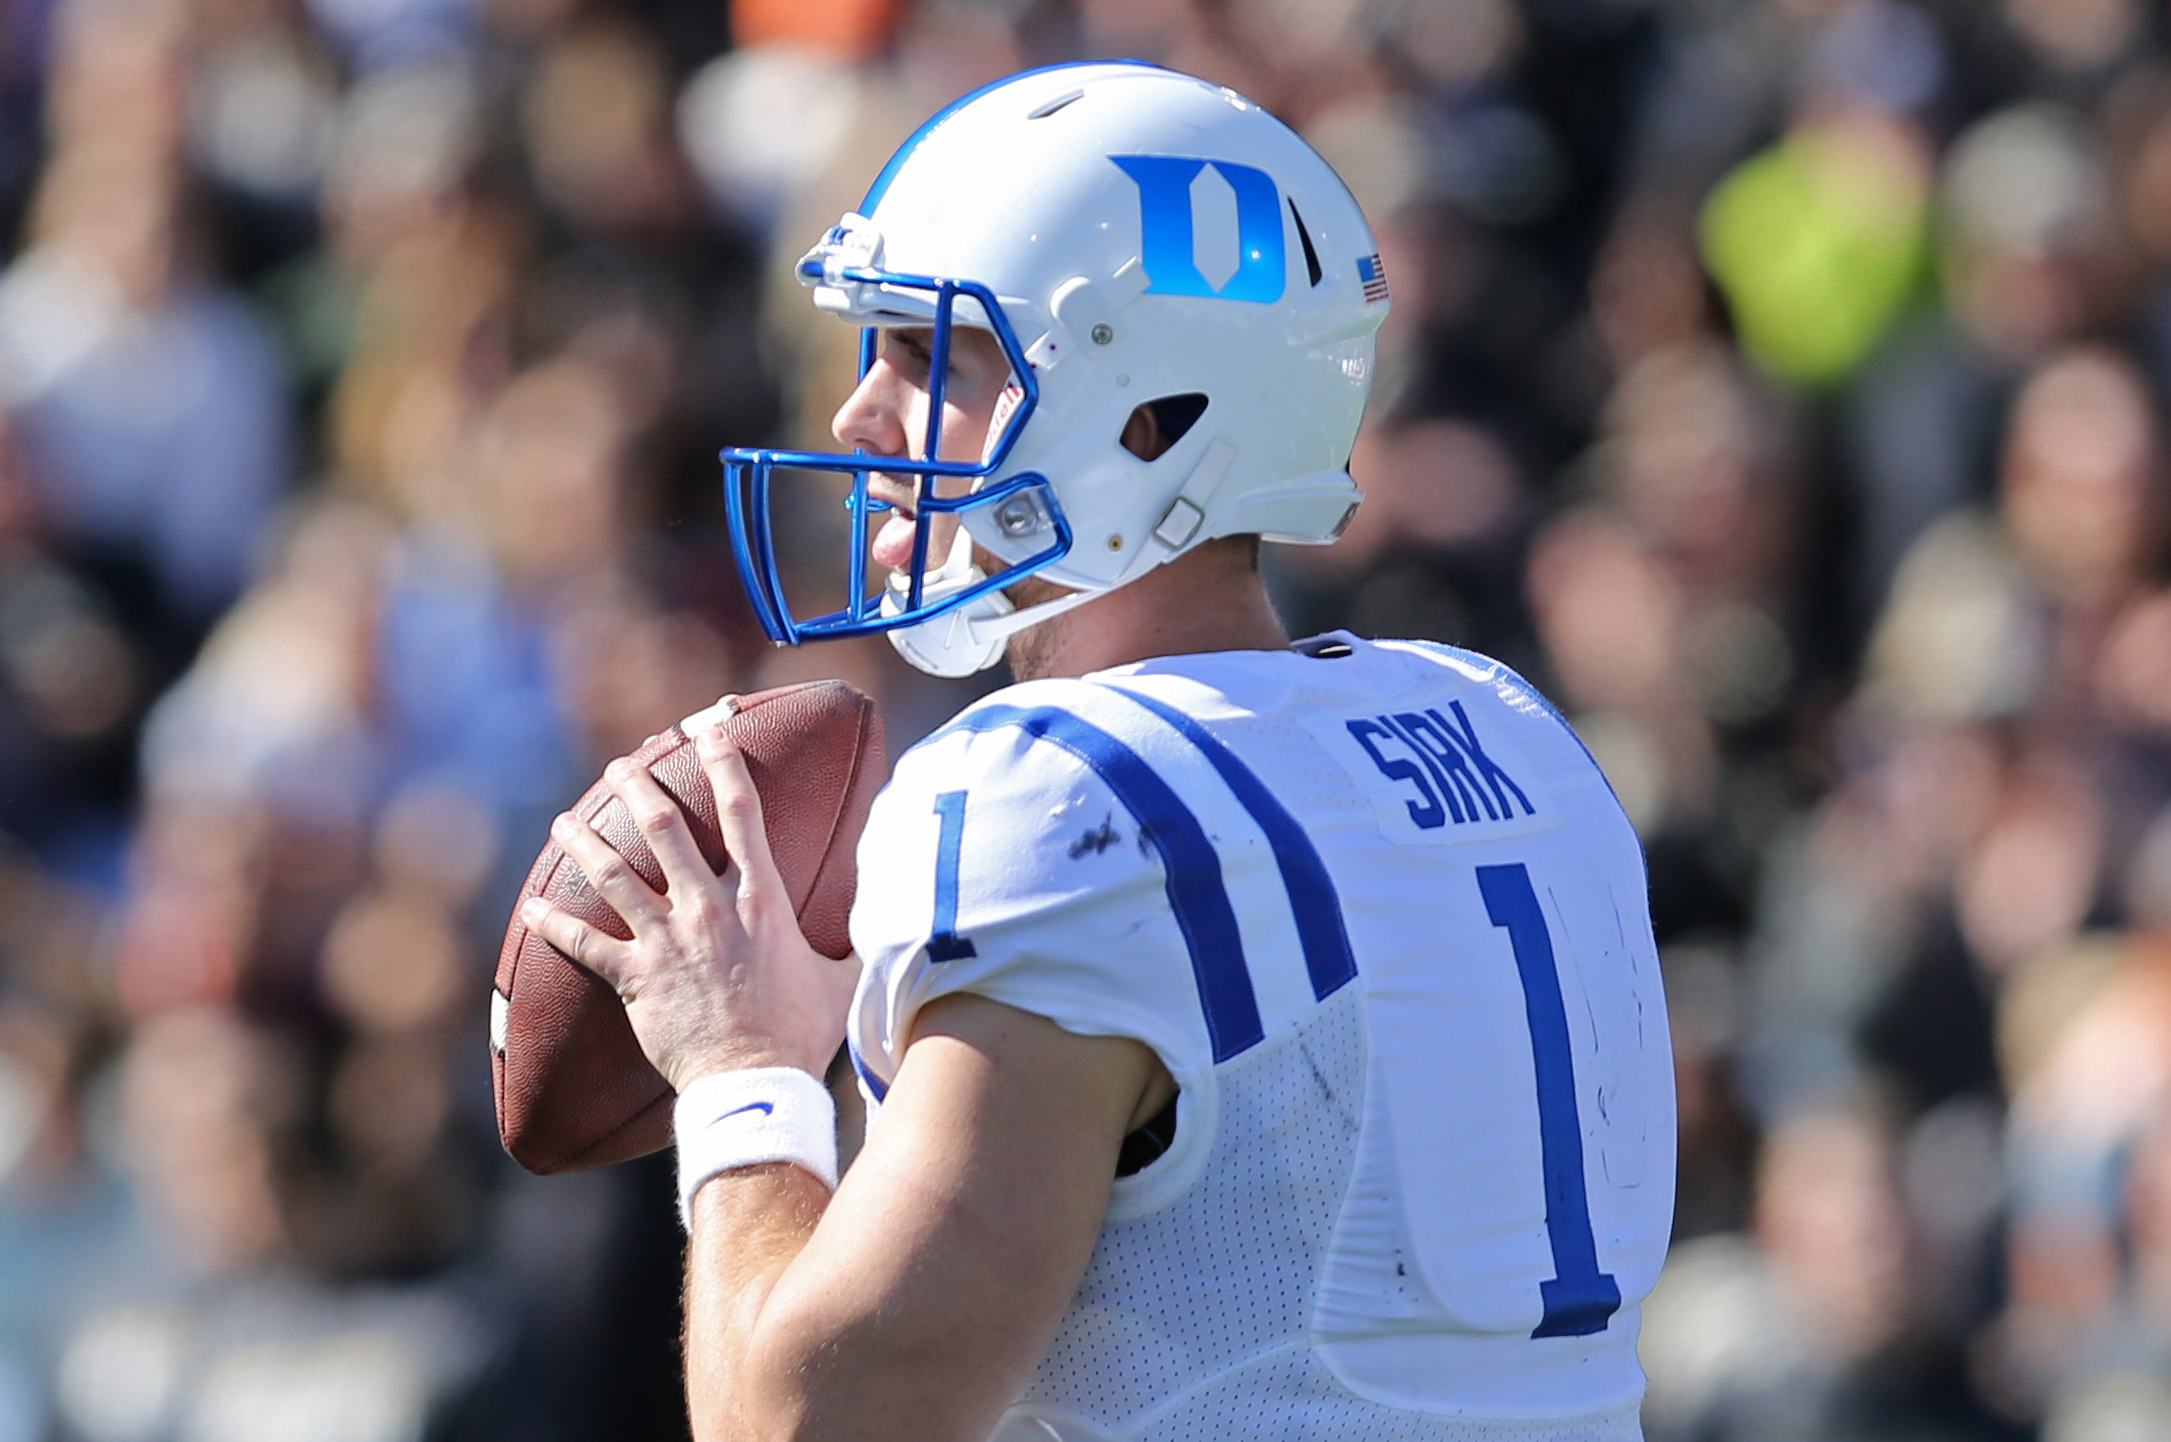 Duke Blue Devils Vs North Carolina Tar Heels Betting Odds Football Pick Bleacher Report Latest News Videos And Highlights